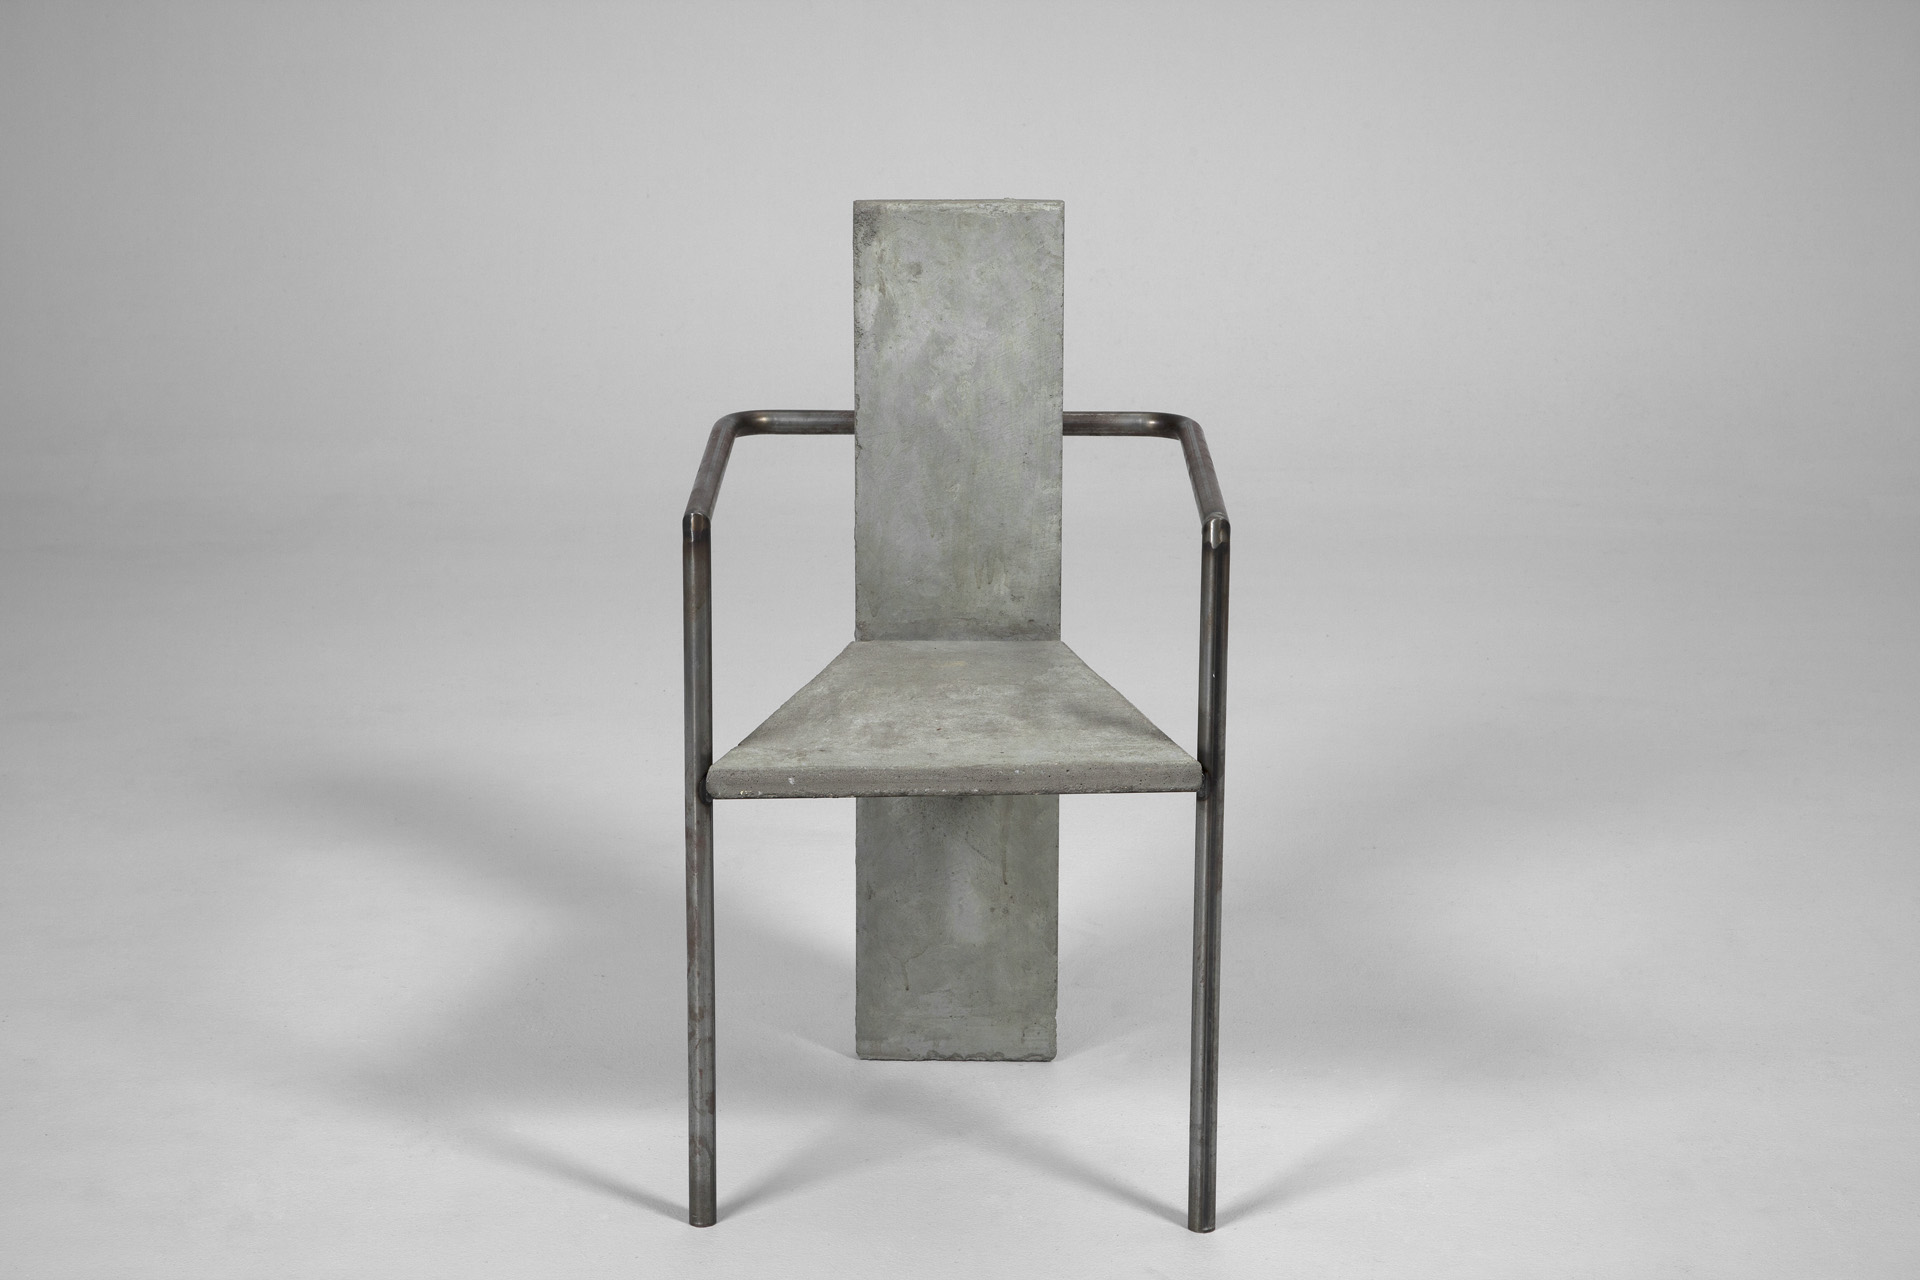 Jacksons Concrete Chair Jonas Bohlin